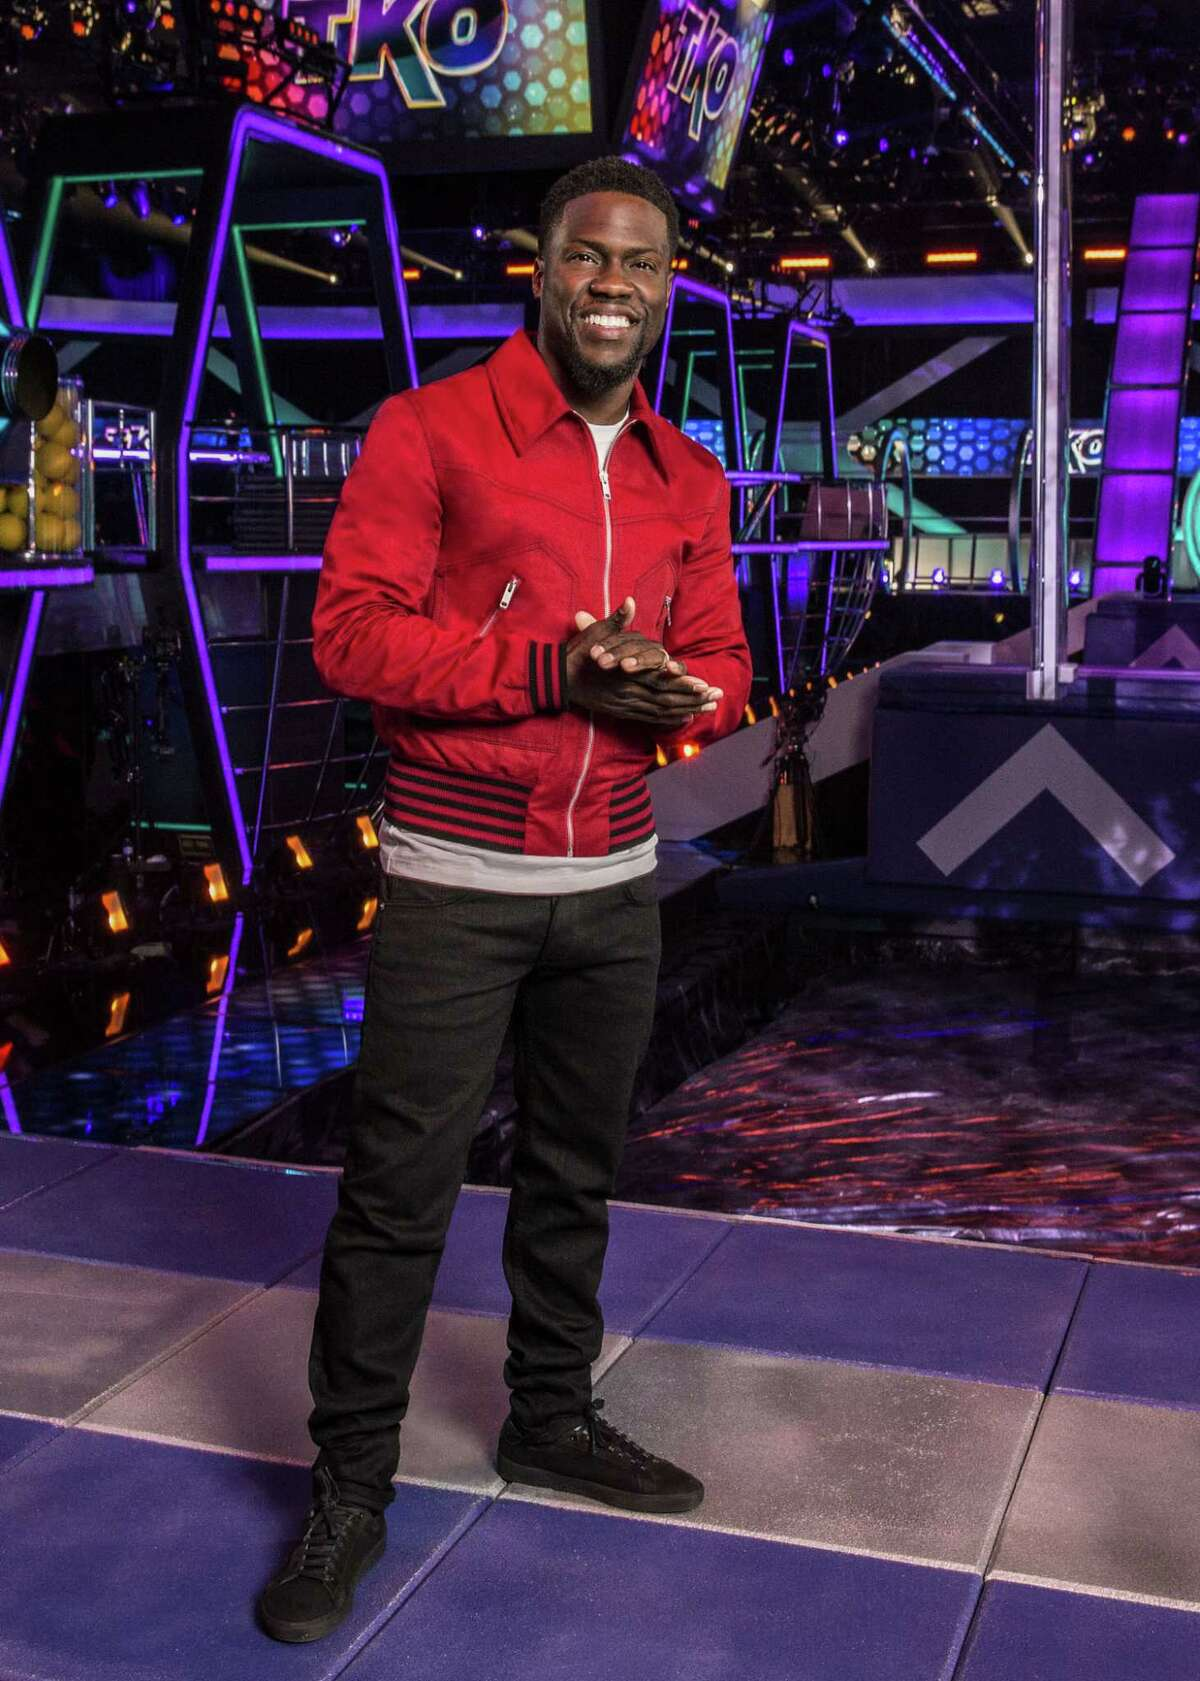 Actor and global superstar Kevin Hart will take on the role of host for the first time in his career with TKO: TOTAL KNOCK OUT, a brand new one-hour obstacle course competition series from executive producer Mark Burnett. The 10-episode series will premiere in summer 2018. Kevin Hart will also serve as an executive producer. Photo: Monty Brinton/CBS ©2018 CBS Broadcasting, Inc. All Rights Reserved.